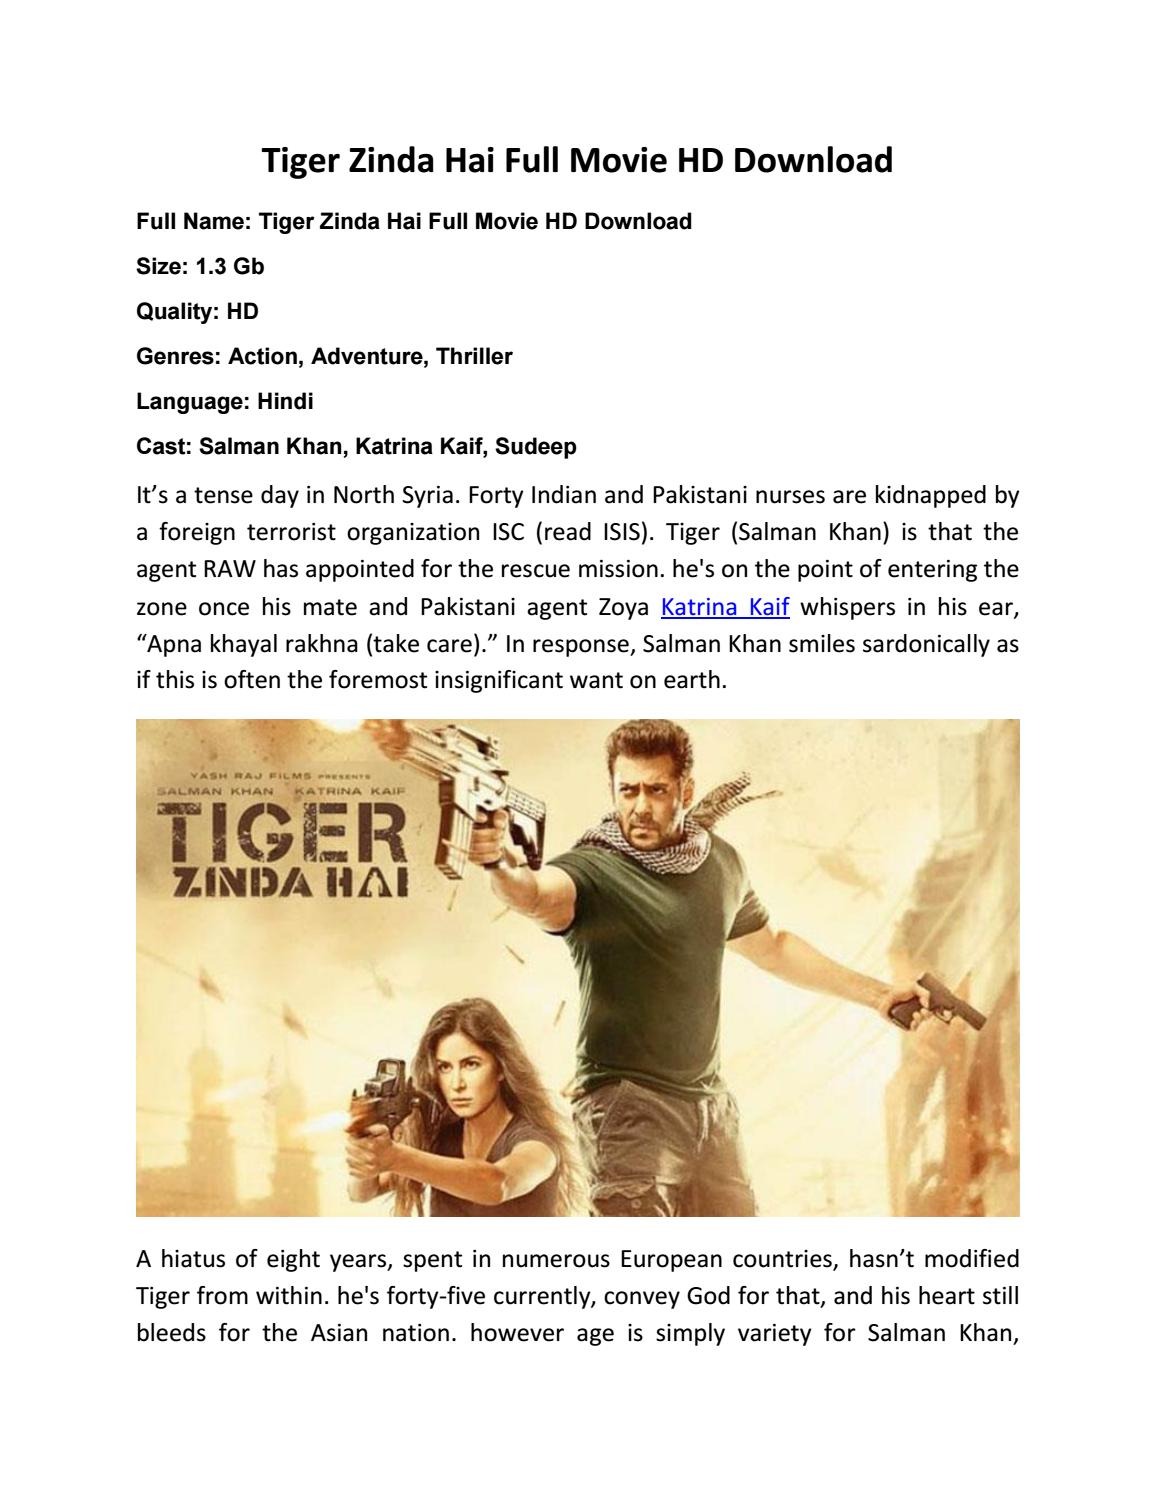 Tiger Zinda Hai Full Movie Hd Download Bollyhoodmovies Com By Imran